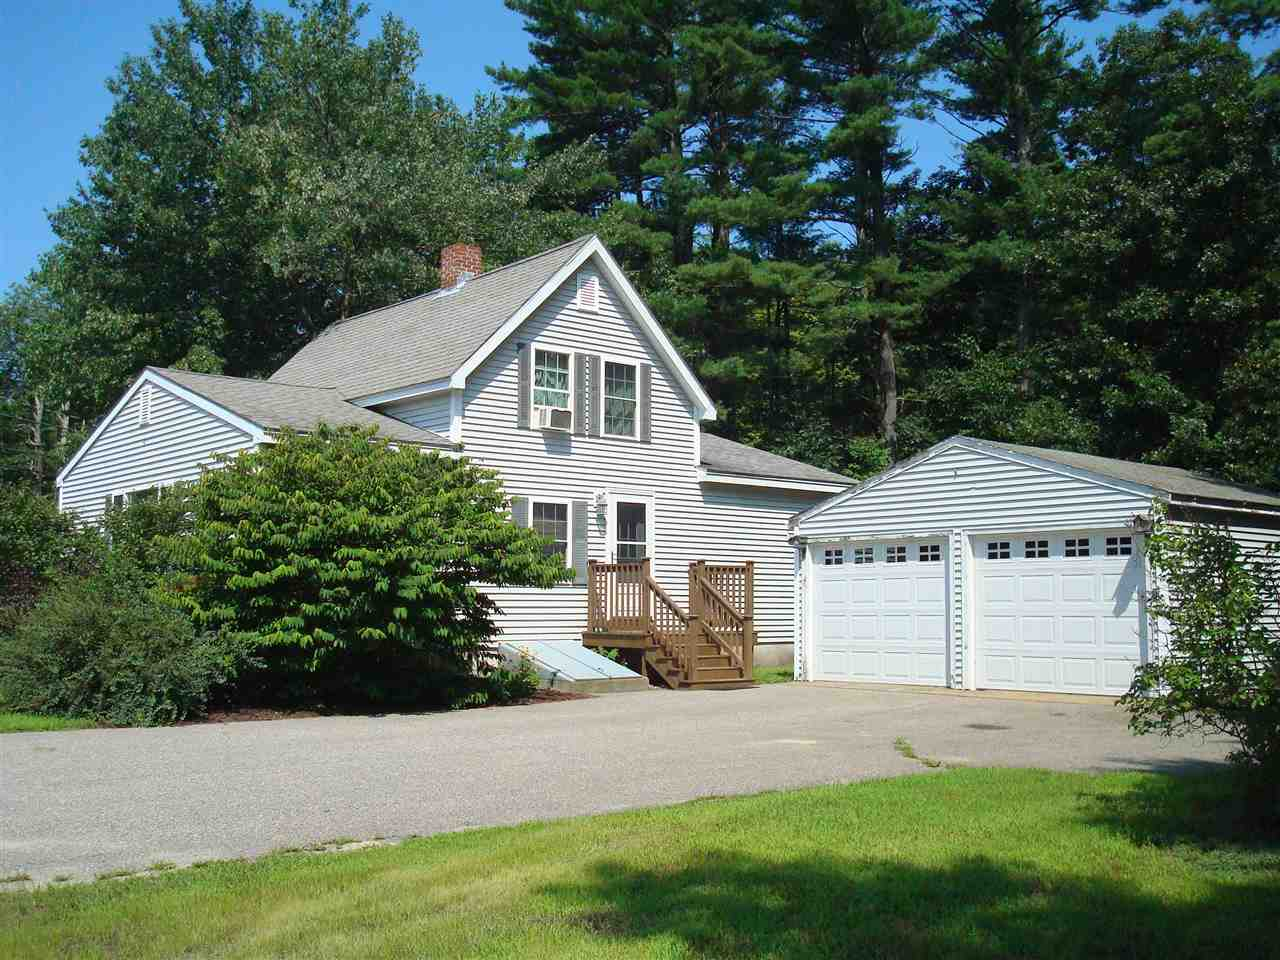 Photo of 135 Jenness Road Epping NH 03042